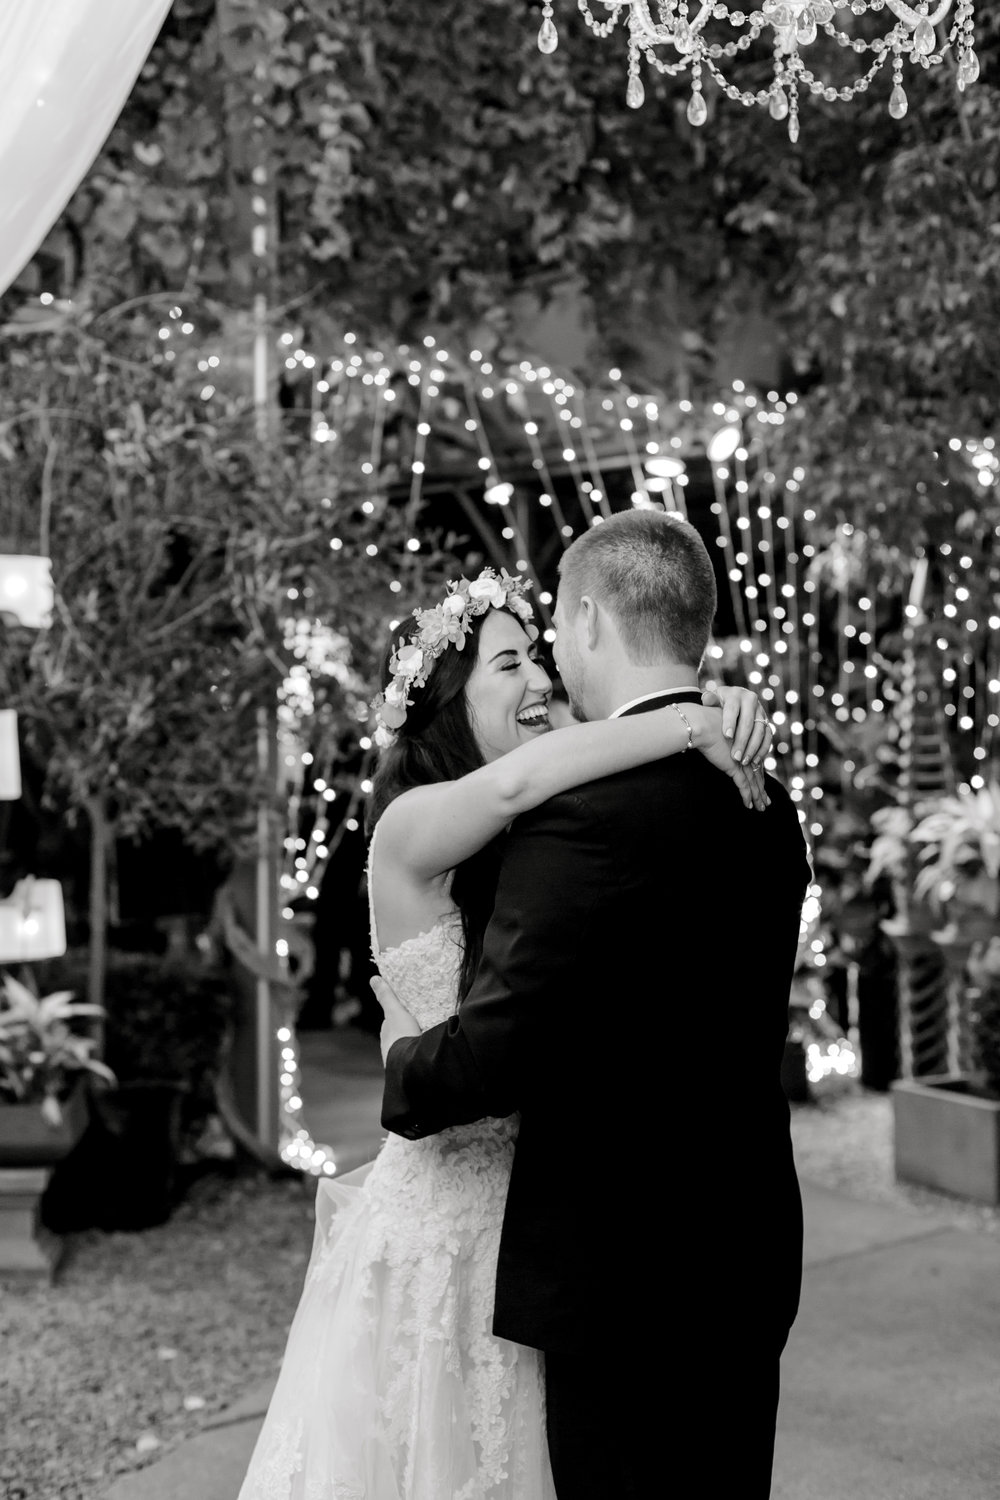 T+BWeddingSubmission-62.jpg